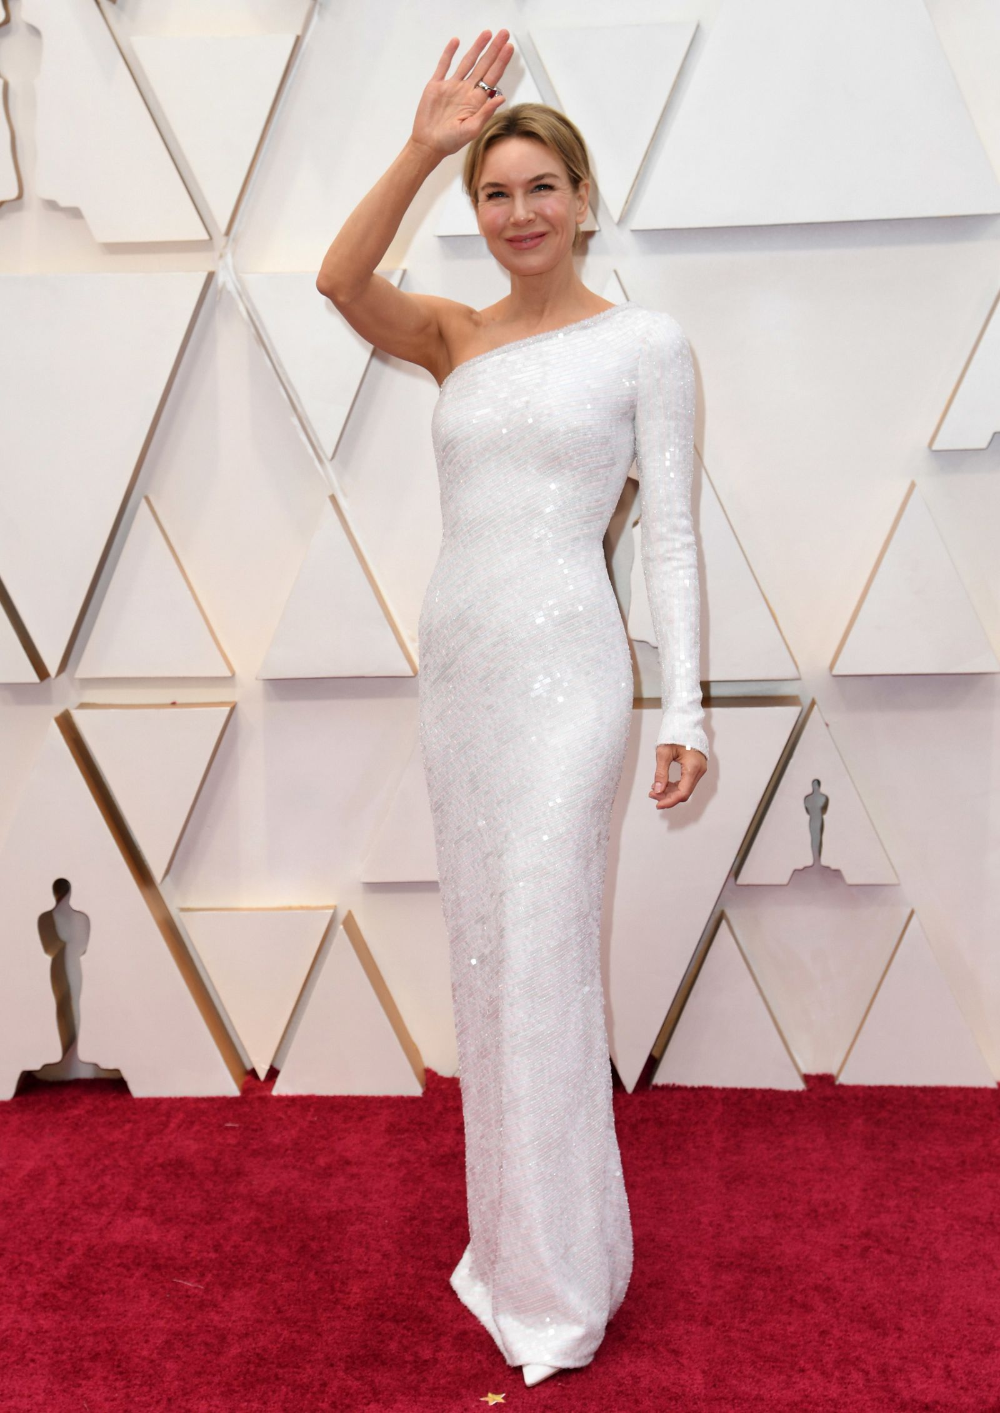 Photos The 2020 Oscars Red Carpet In 2020 Red Carpet Oscars Hollywood Gowns Hollywood Red Carpet